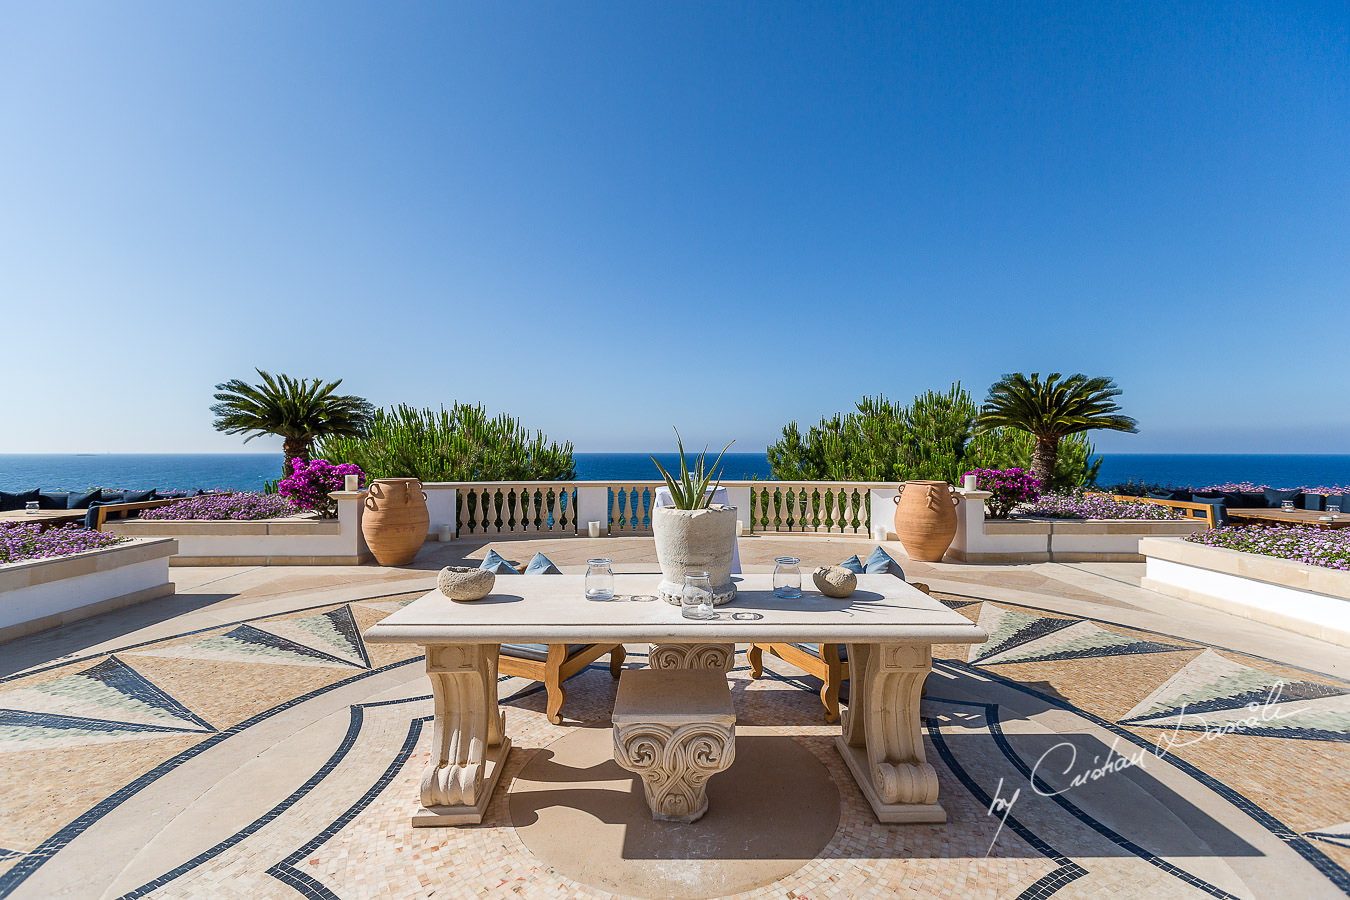 The terrace of the beautiful Anassa Hotel photographed by Cyprus Photographer Cristian Dascalu.